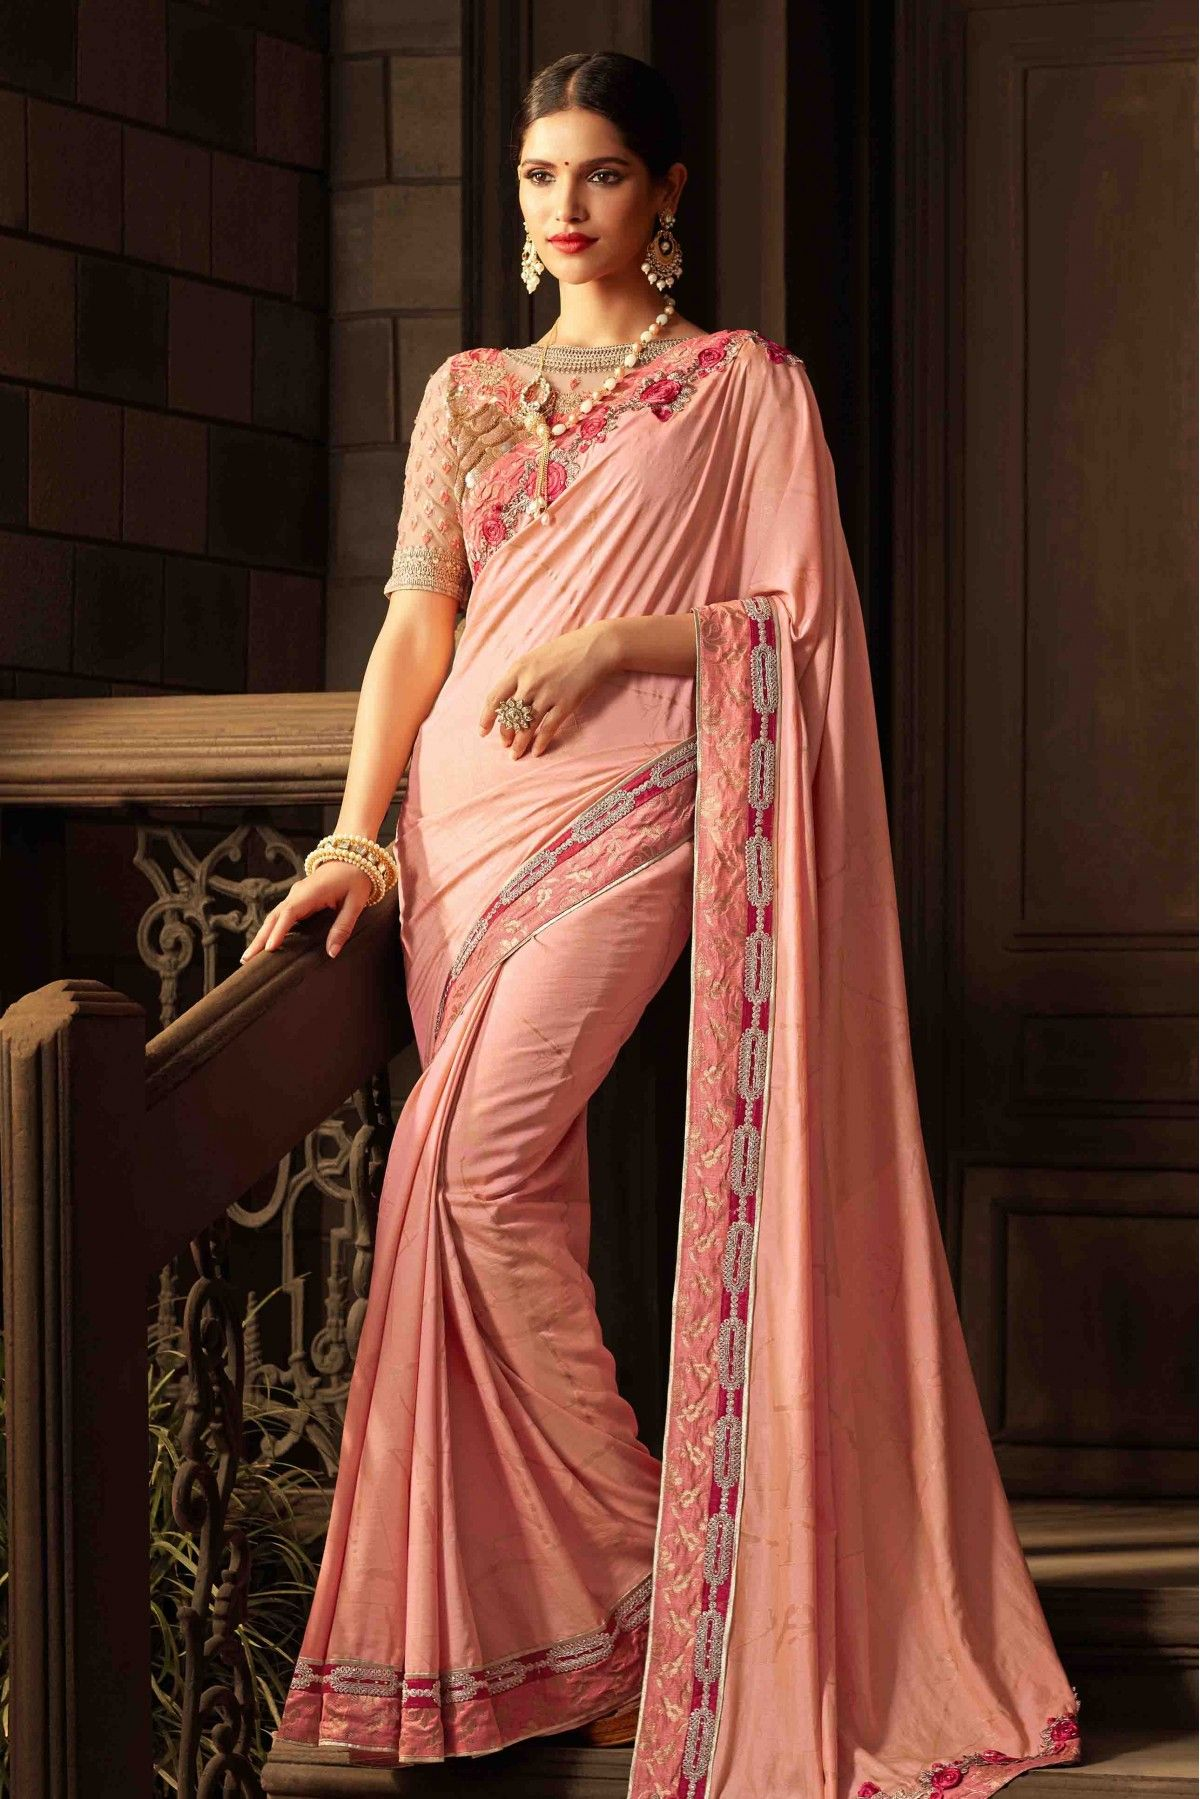 818ec64730 Buy Sana Silk Saree In Baby Pink Colour for women @ ninecolours.com.  Worldwide Free Shipping Available!